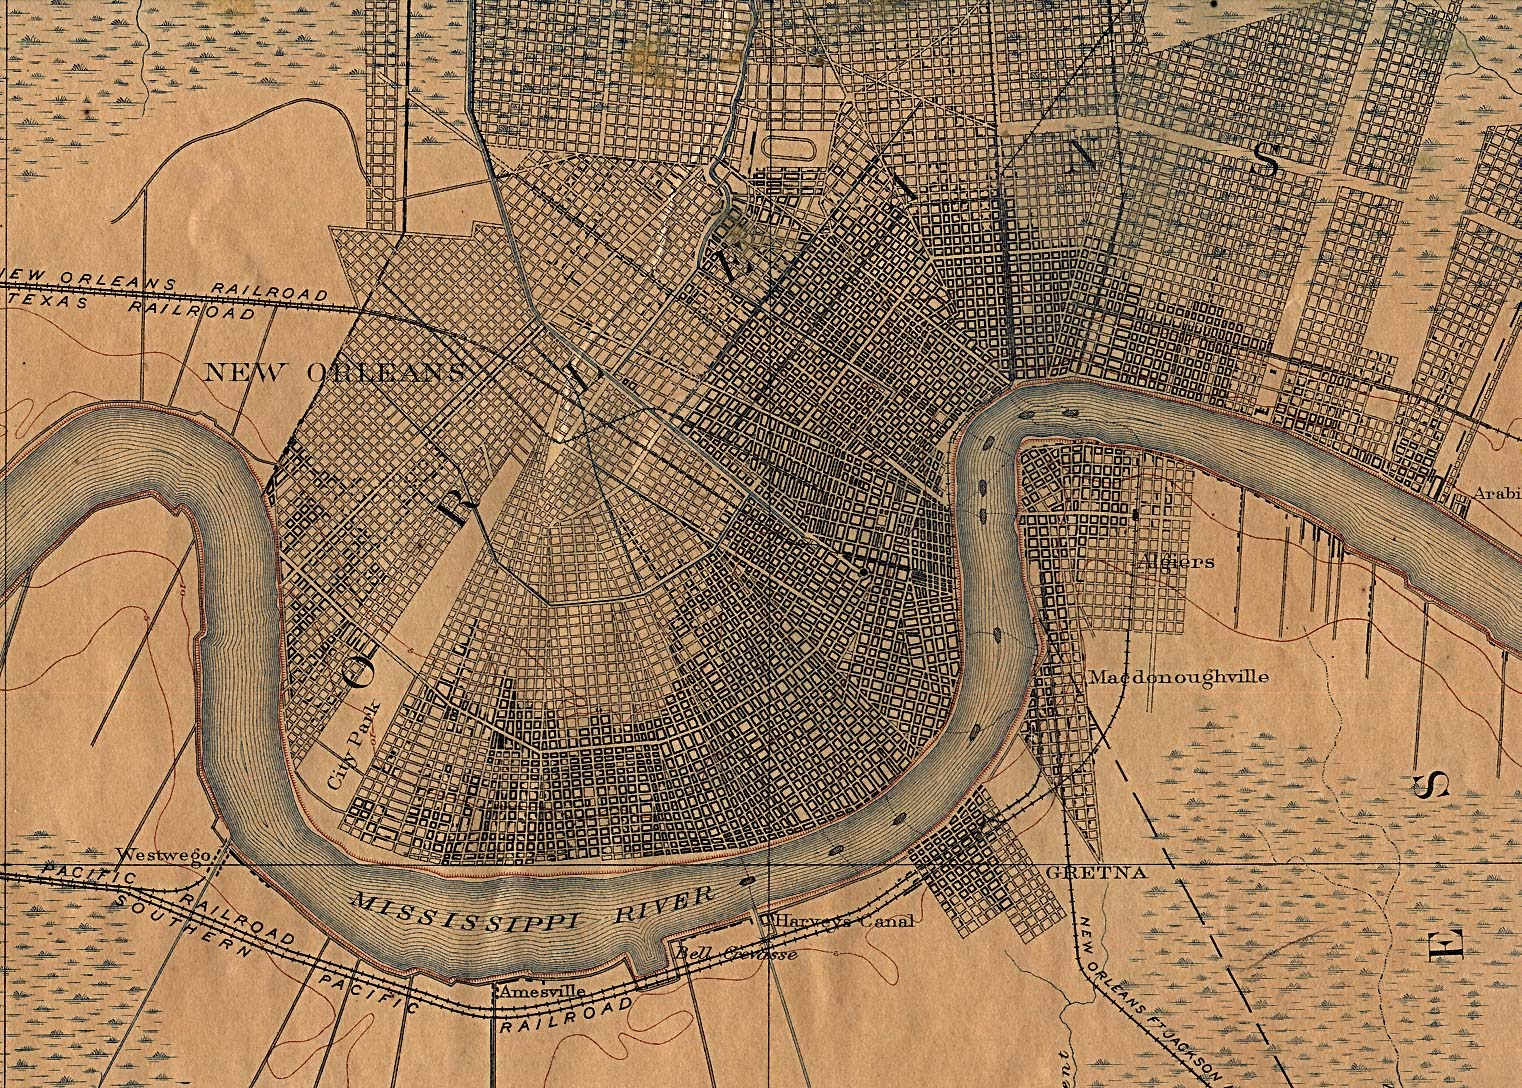 New Orleans City Map, Louisiana, United States 1891